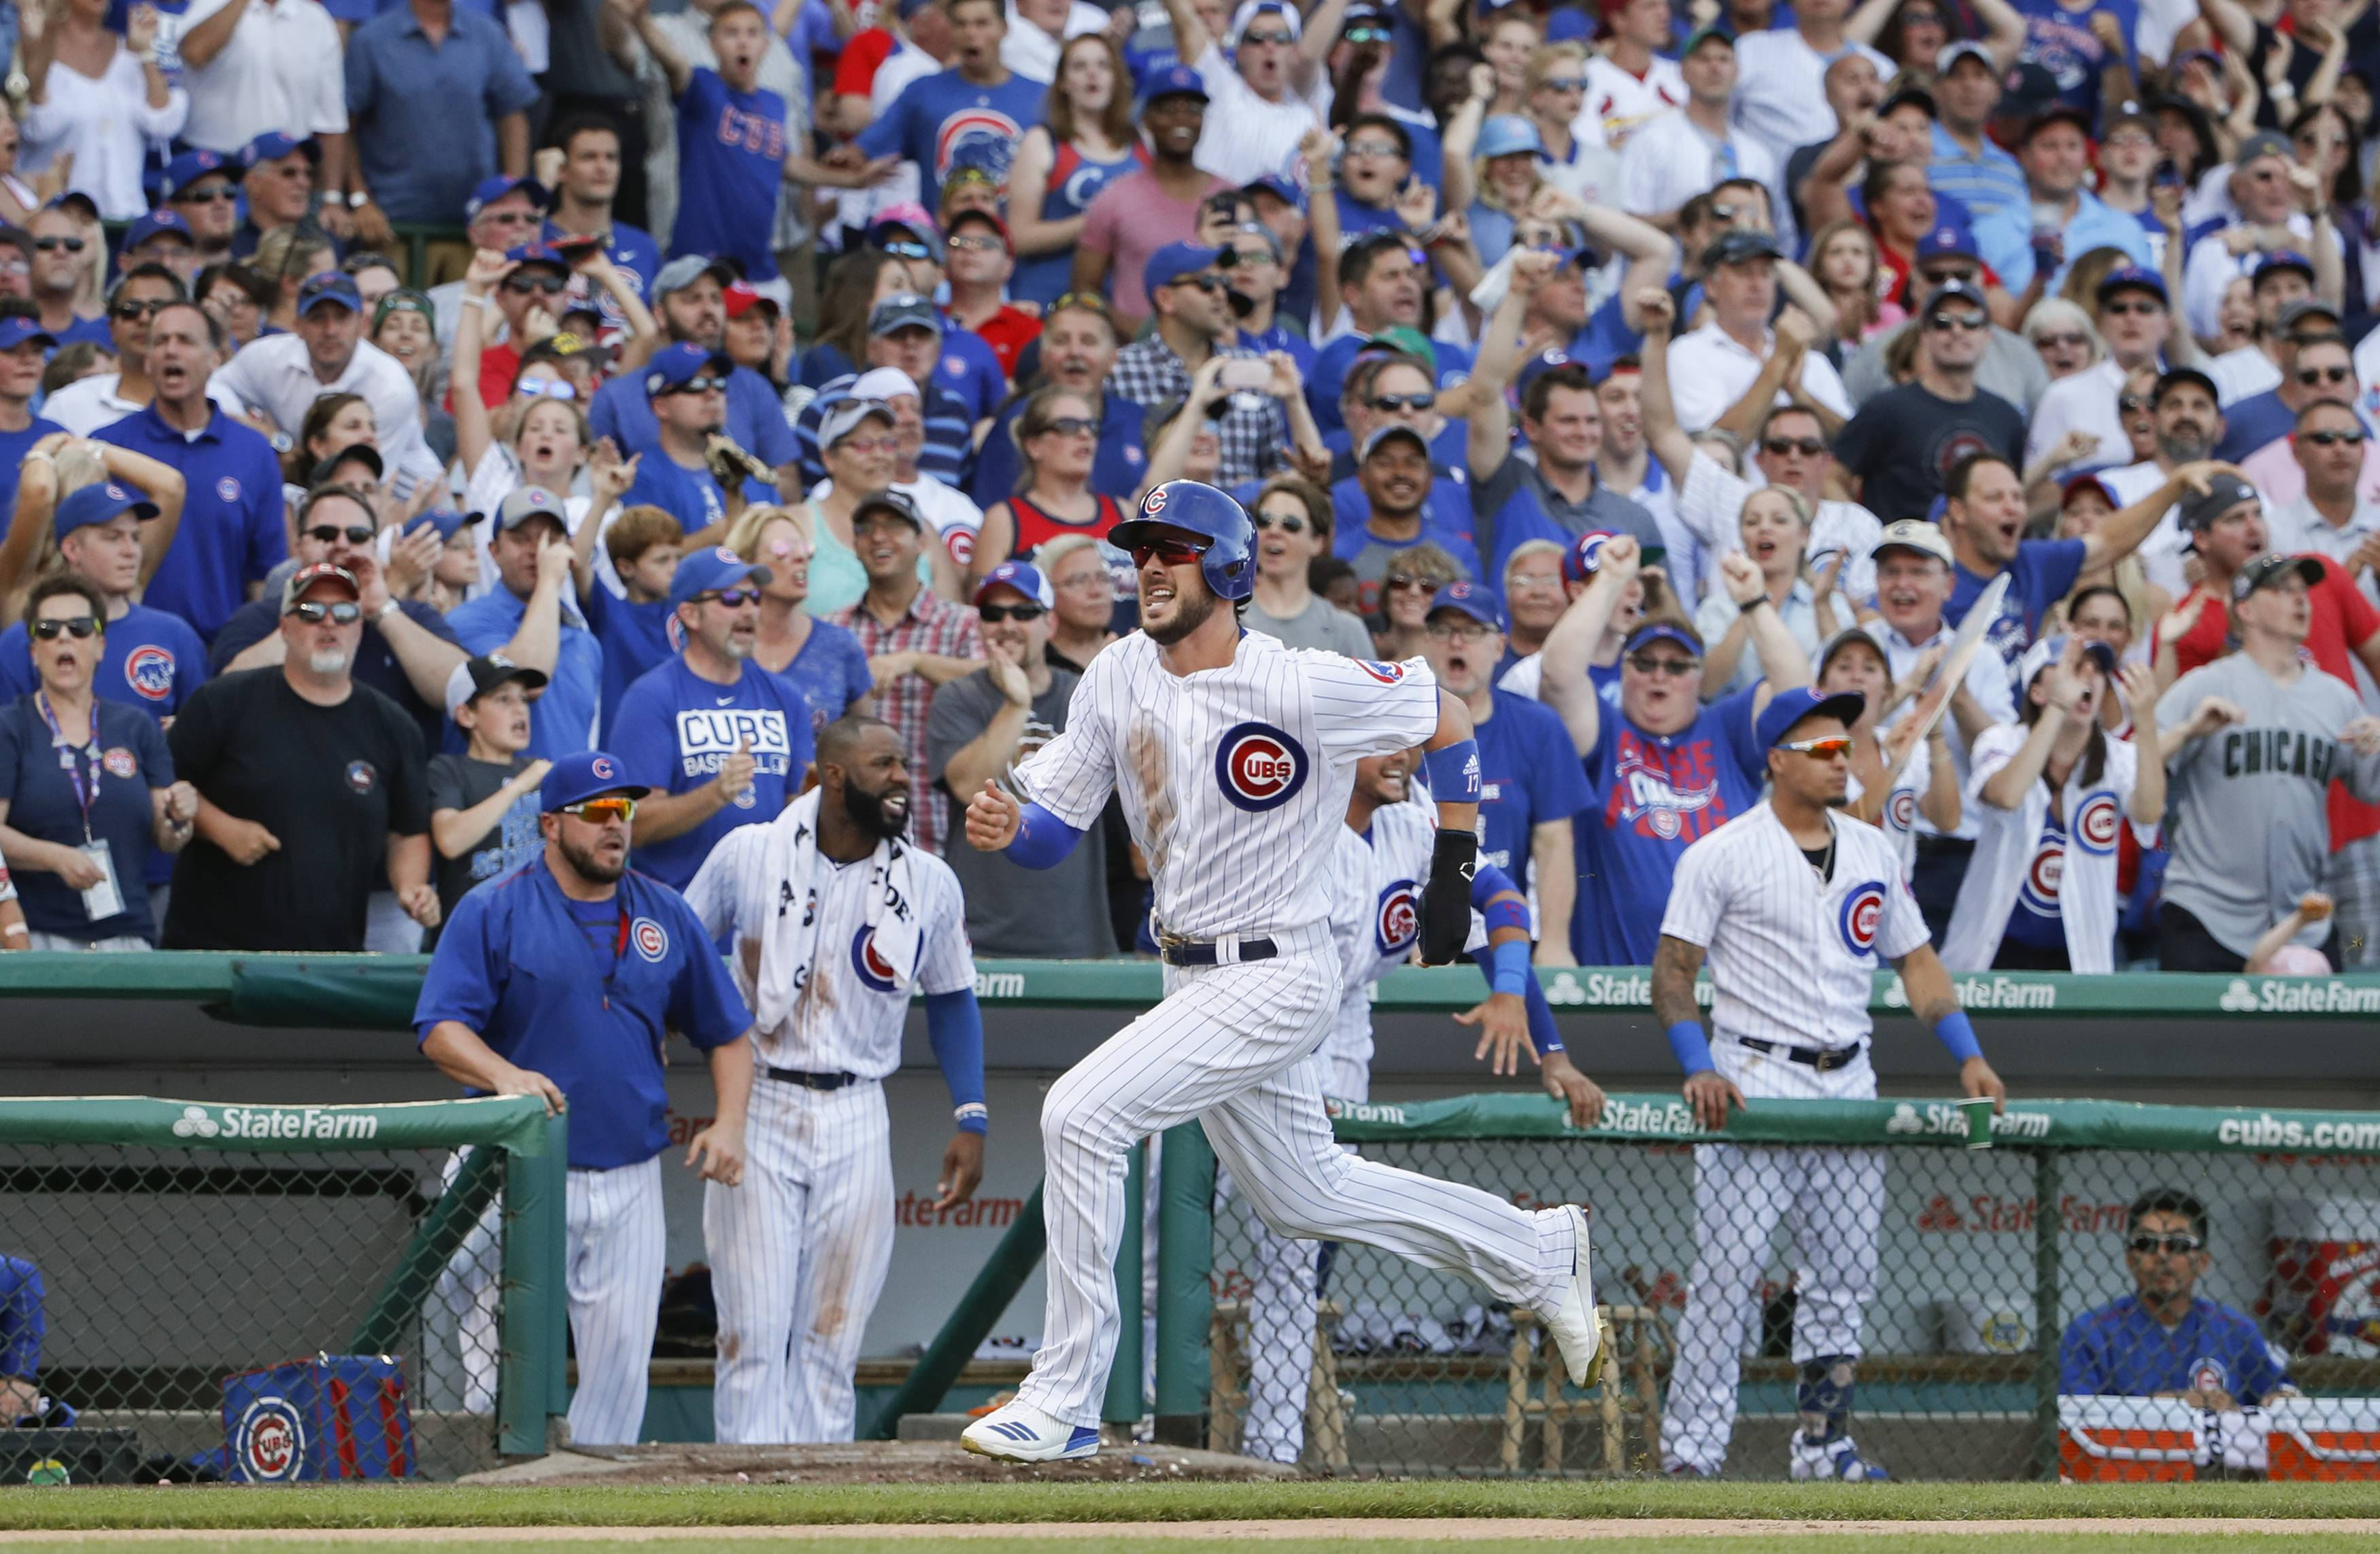 Chicago Cubs' Jason Heyward runs the bases after hitting a triple off St. Louis Cardinals starting pitcher Adam Wainwright during the second inning of a baseball game, Saturday, July 22, 2017, in Chicago. (AP Photo/Kamil Krzaczynski)